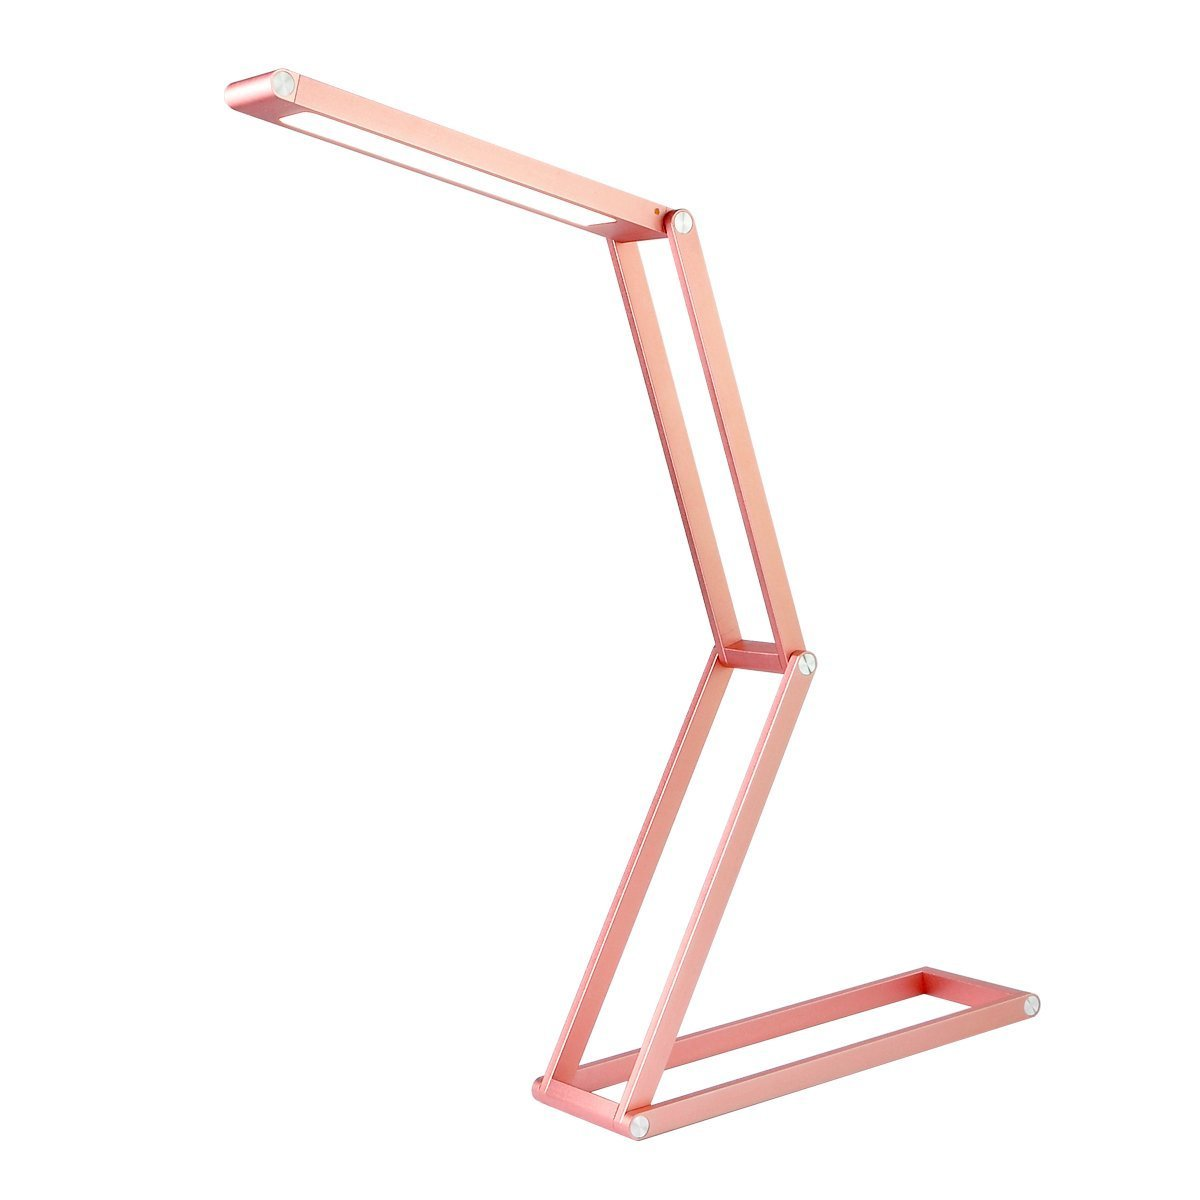 ANTIEE Foldable LED Desk Lamp, USB Rechargeable, Portable and Multi-Functional - Reading, Studying, Camping, Home and Office (Rose Gold)